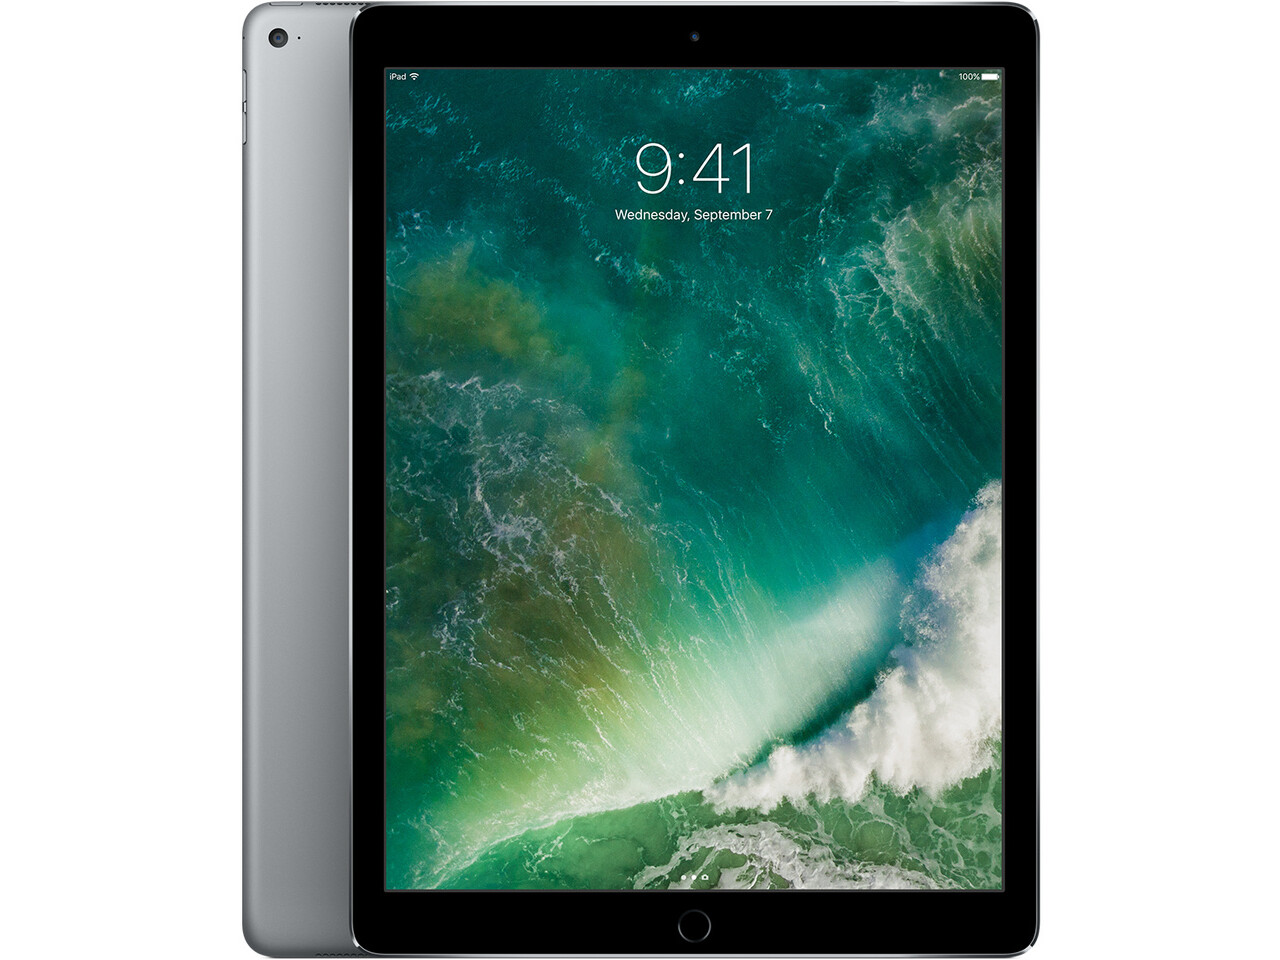 ipad pro 1 12 inch space gray